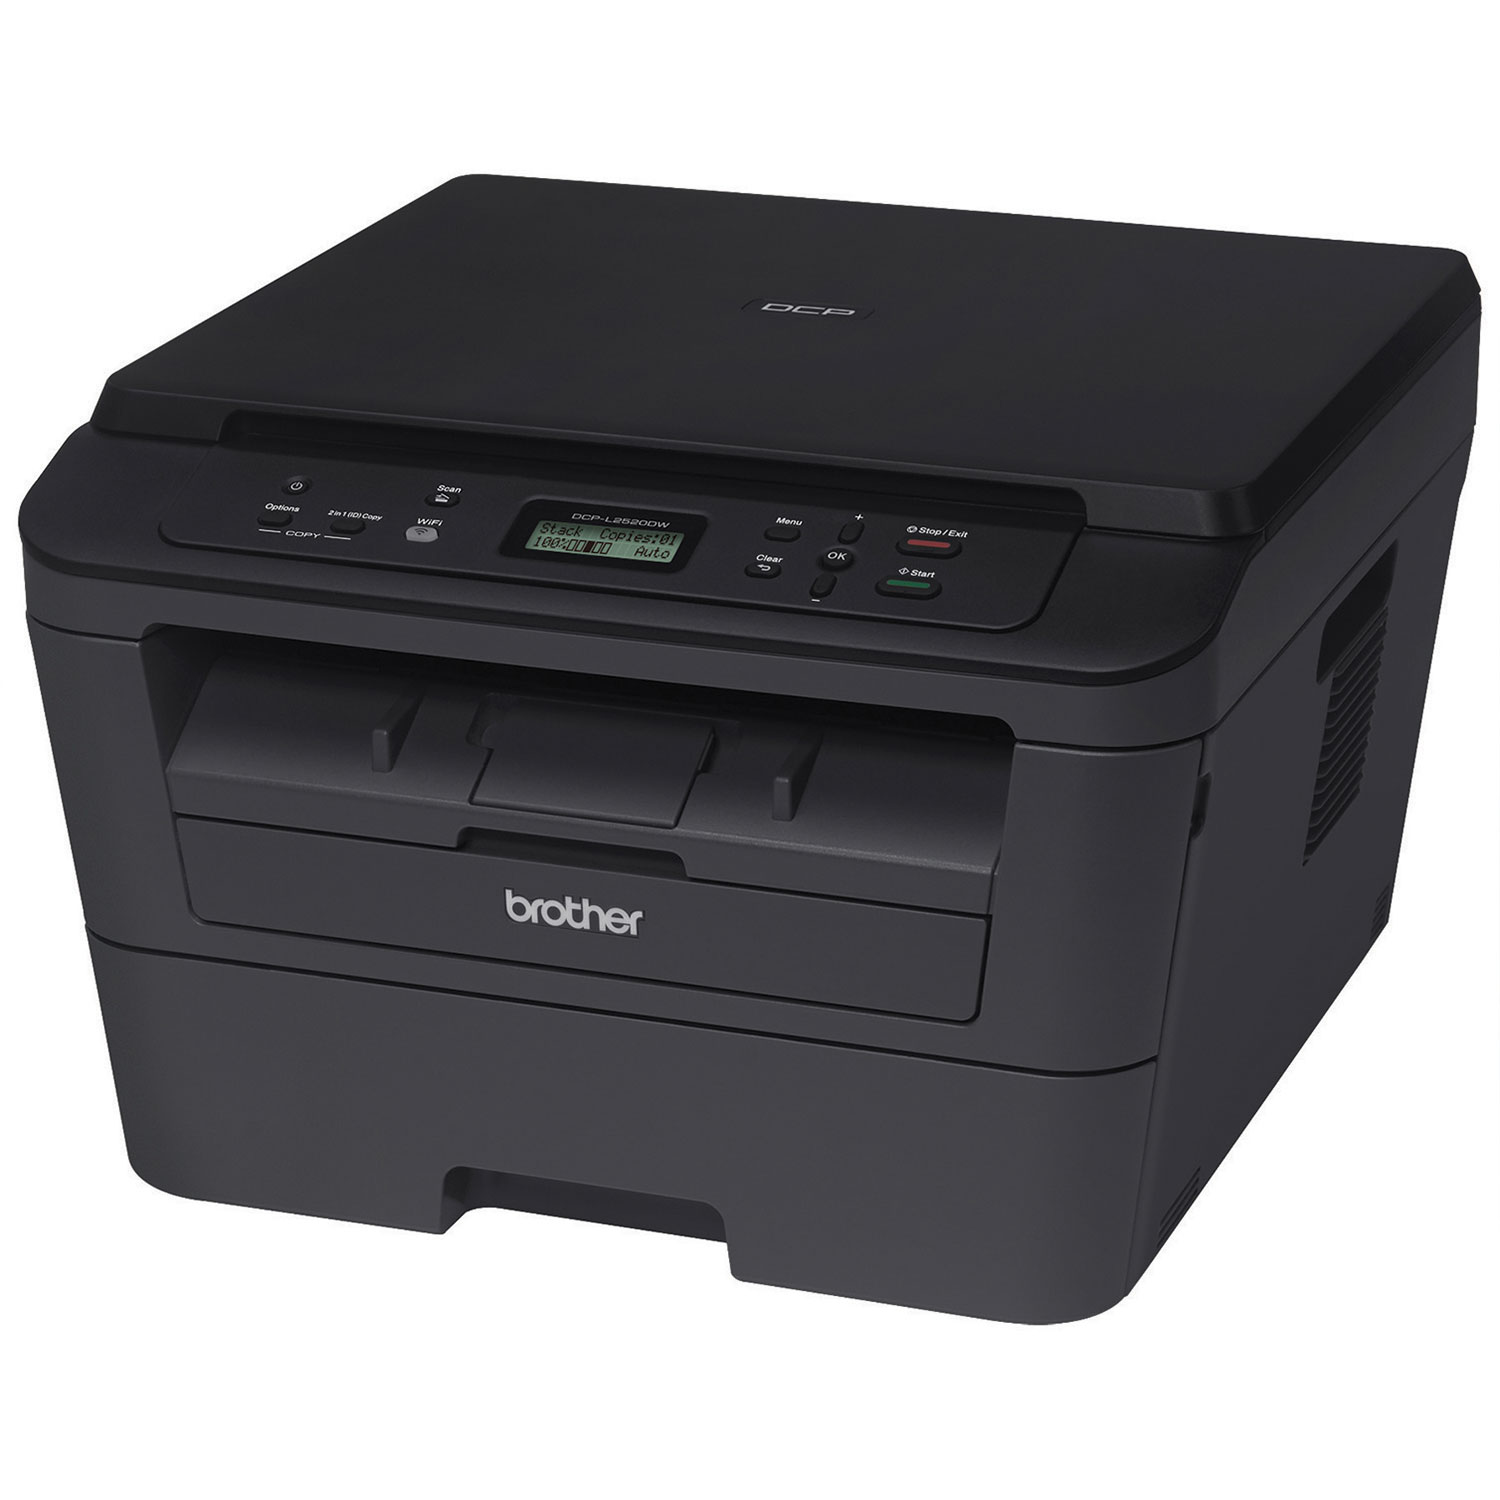 Color printing vs black and white cost - Brother Wireless All In One Laser Printer Dcp L2520dw